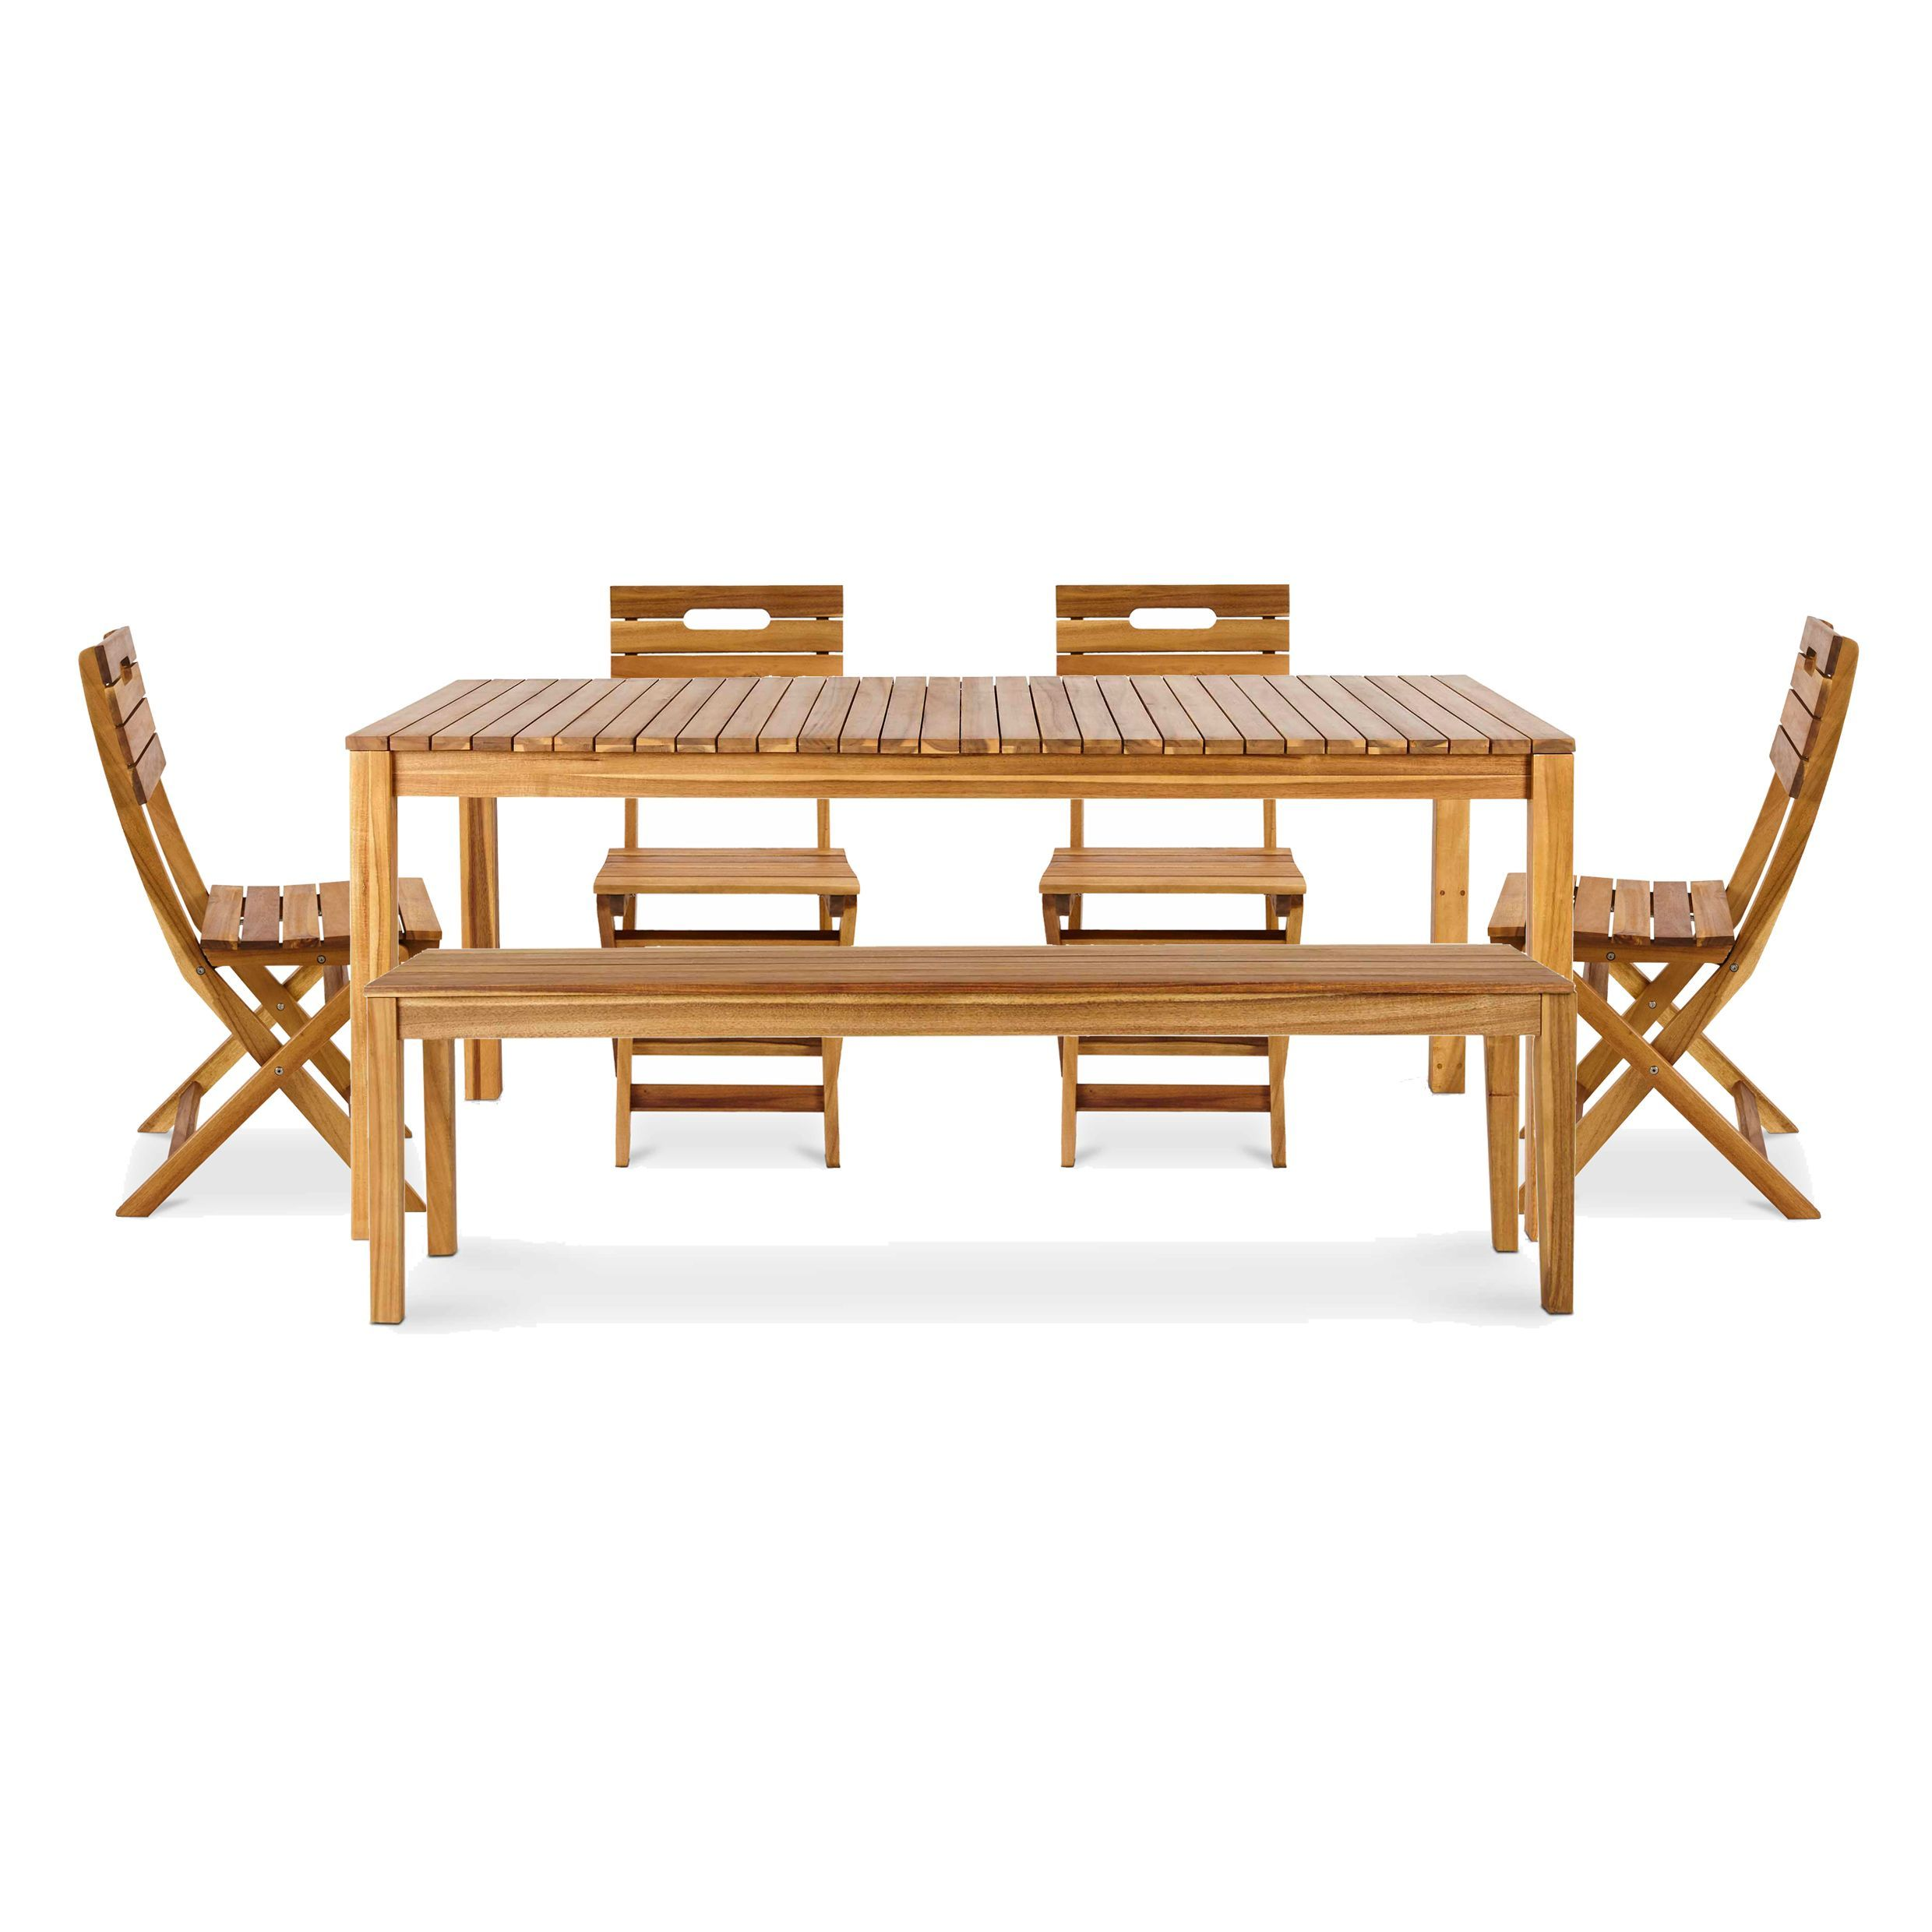 Wooden Garden Benches B Q: Denia Wooden 6 Seater Dining Set With Bench